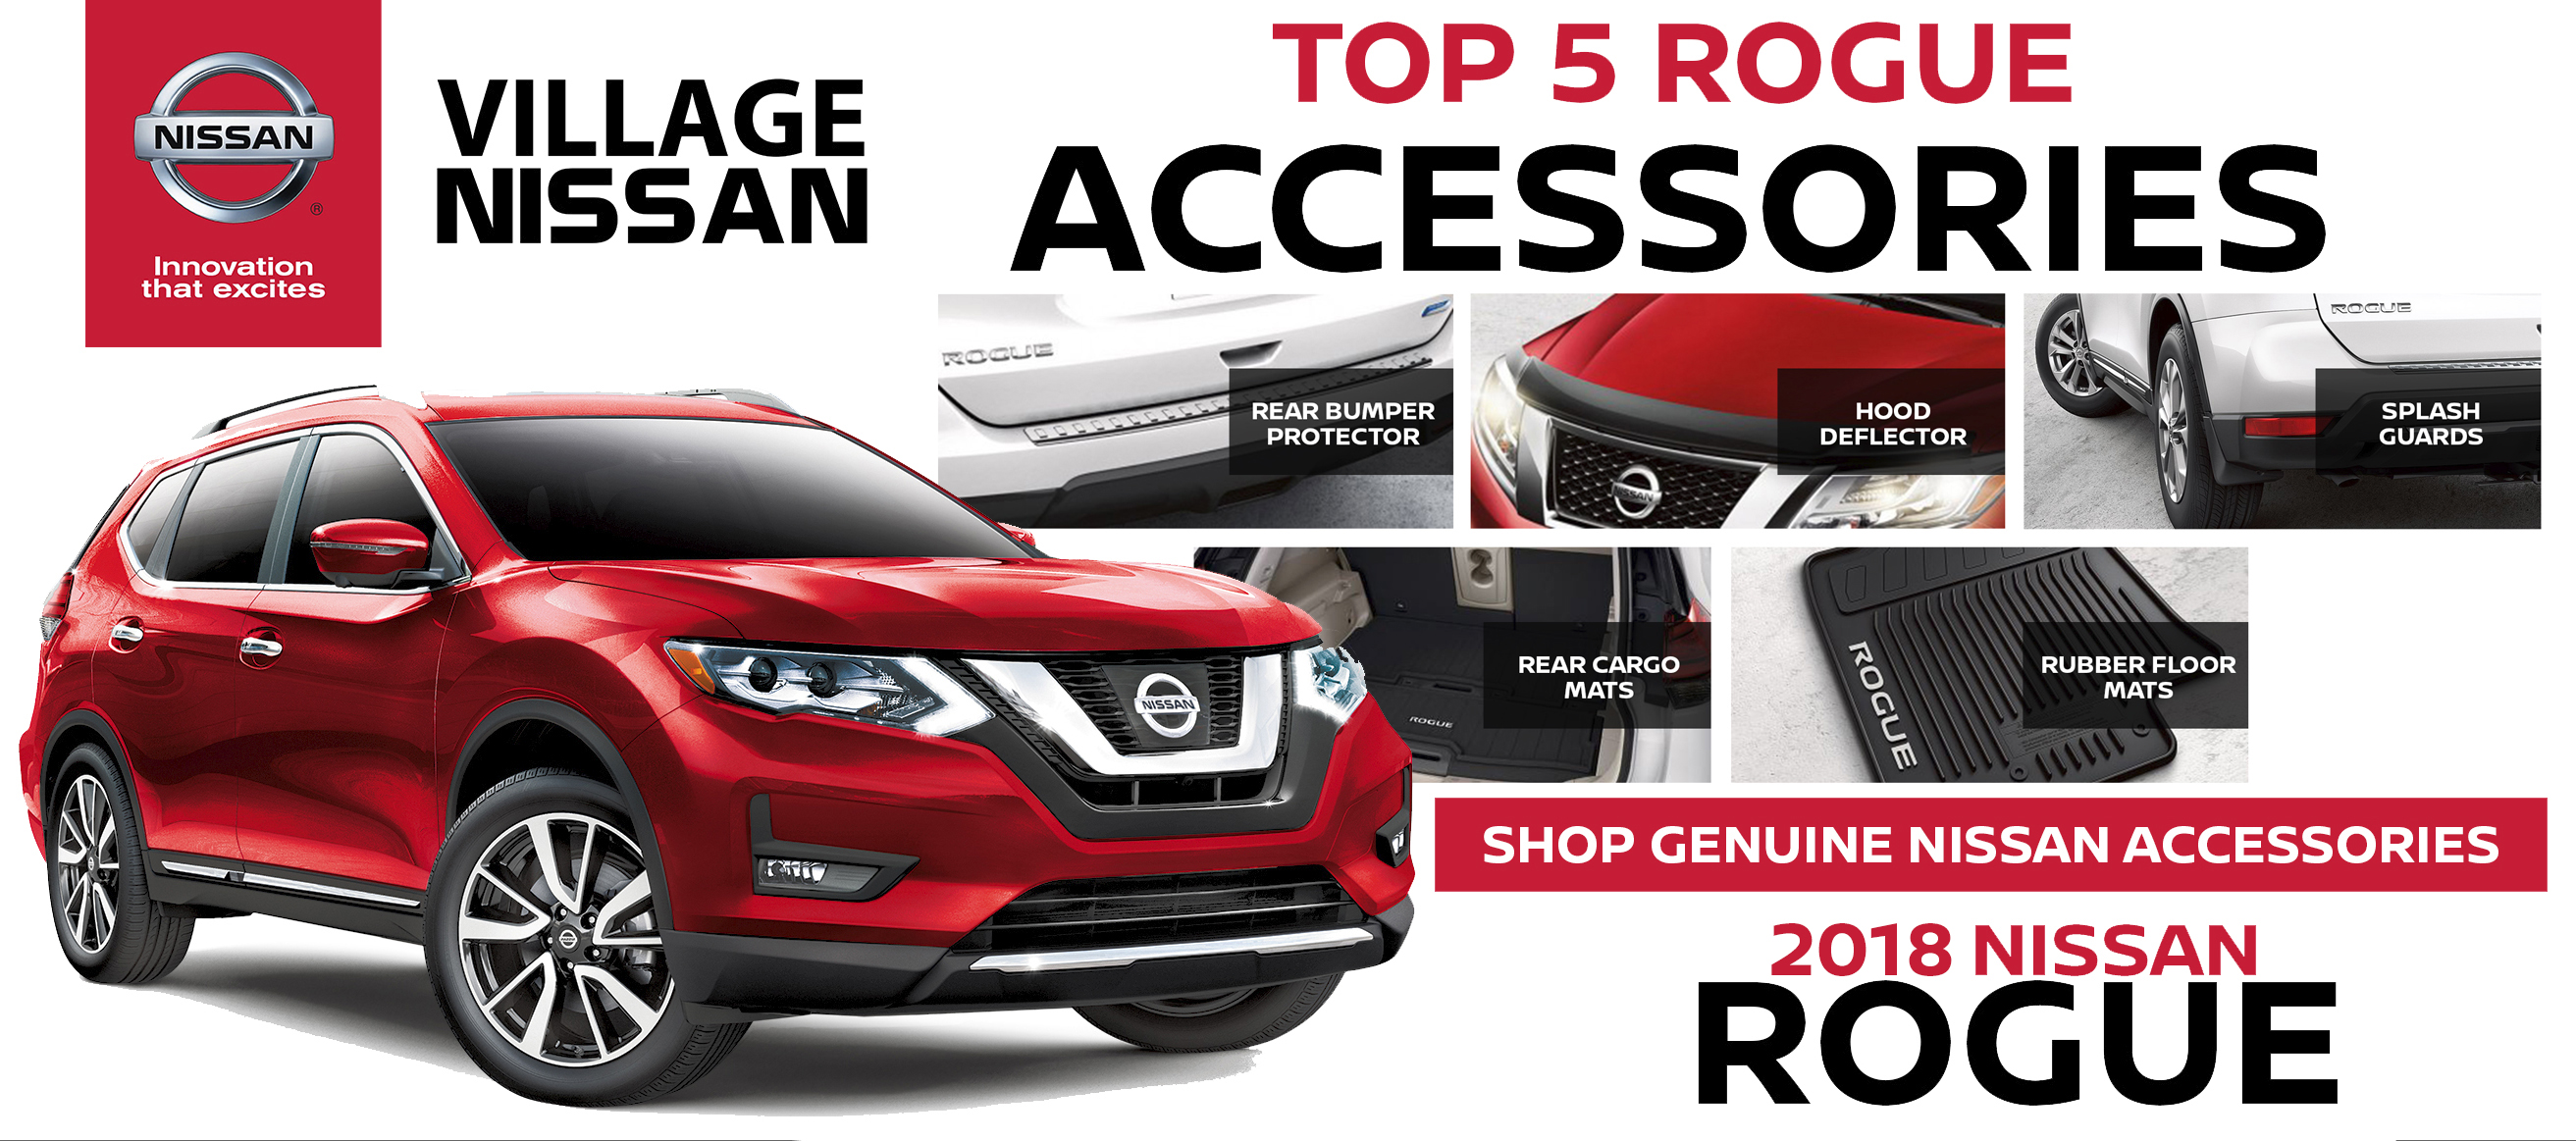 Nissan Rogue Accessories Village Nissan